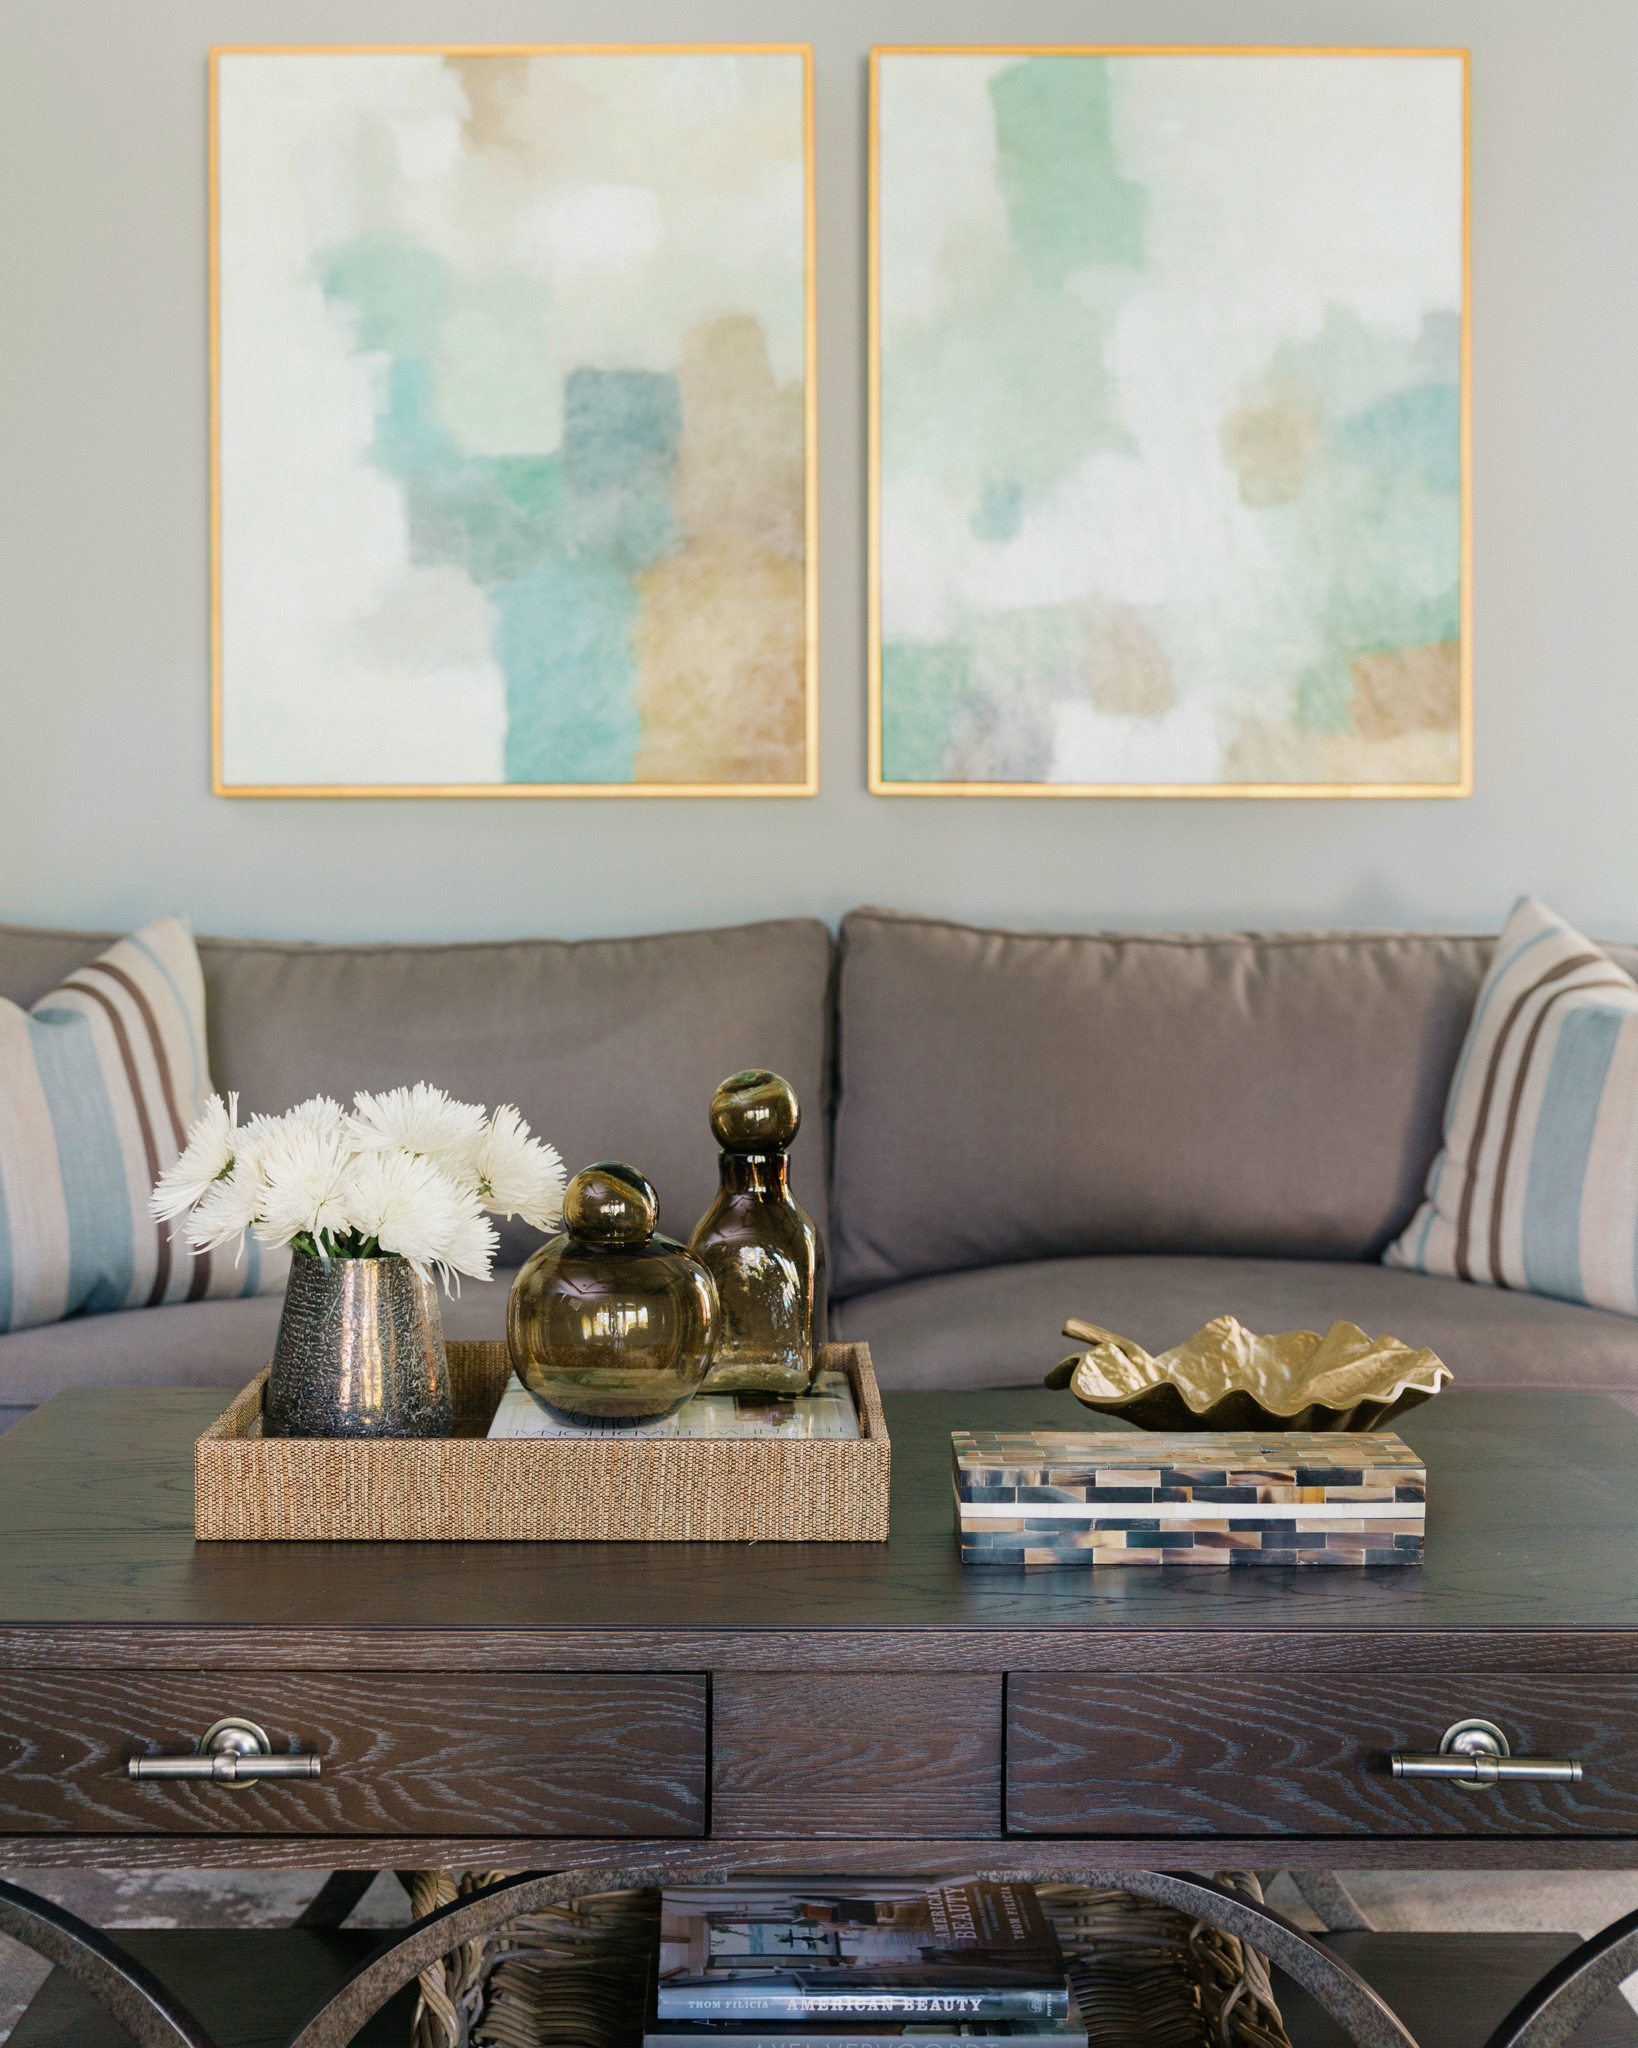 Project Reveal - Family room, backyard oasis, breakfast room | Carla Aston, Designer | Colleen Scott, Photographer |#familyroom #familyroomideas #coffeetablestyling